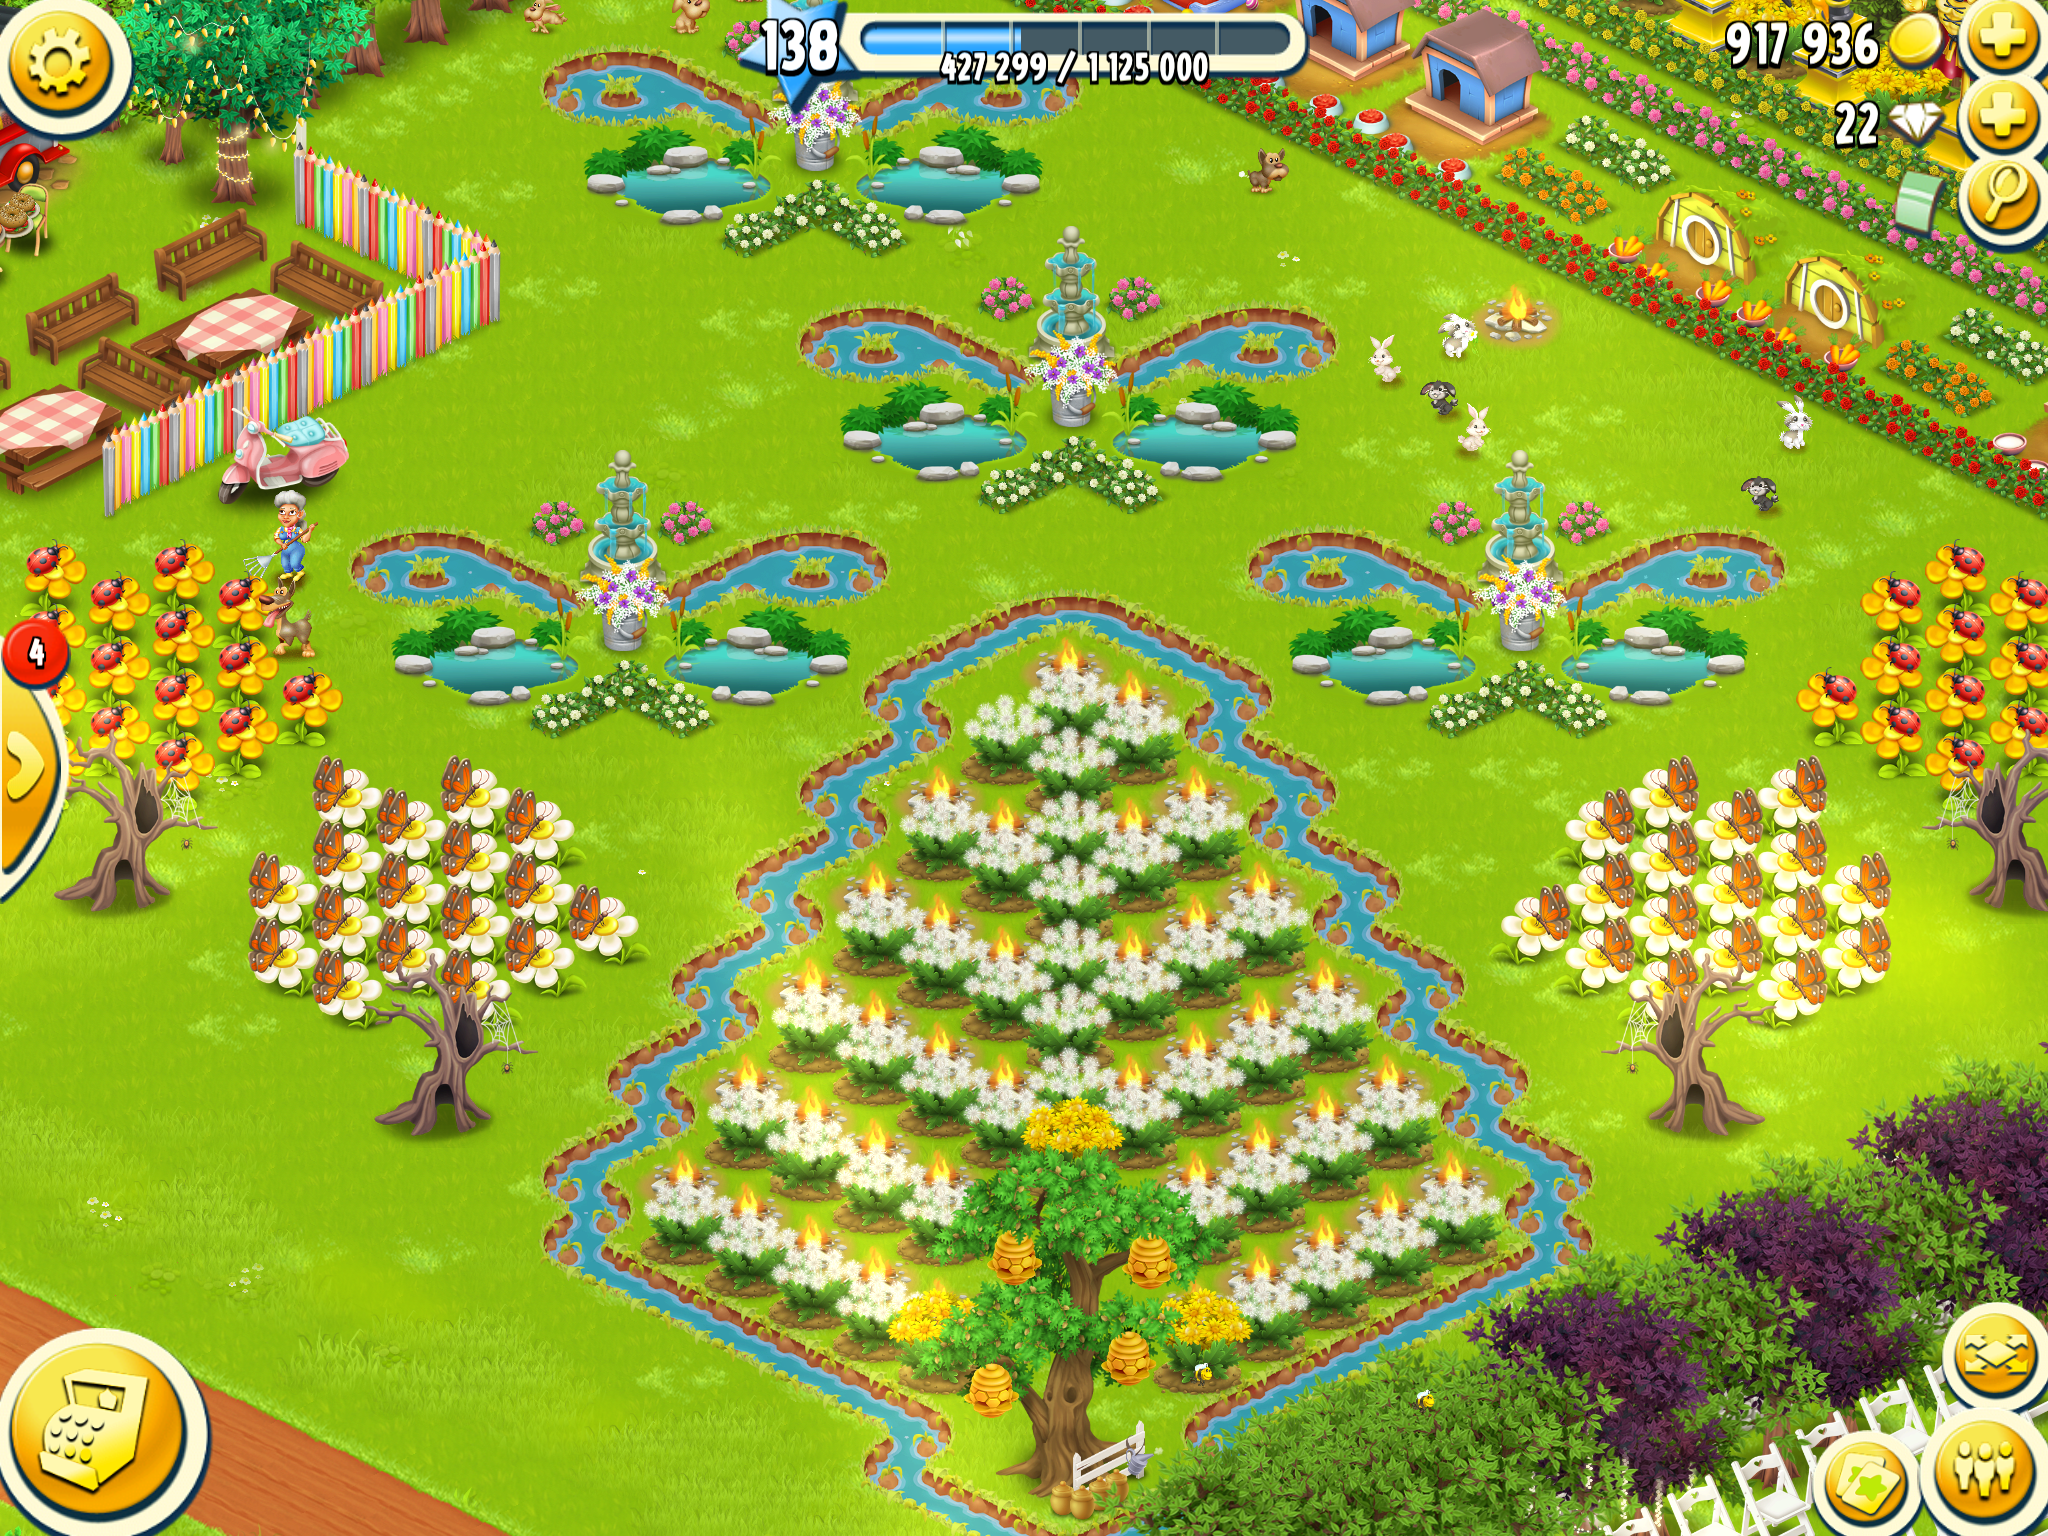 Pin By Clay Reedy On Hay Day Hay Day Hayday Farm Design